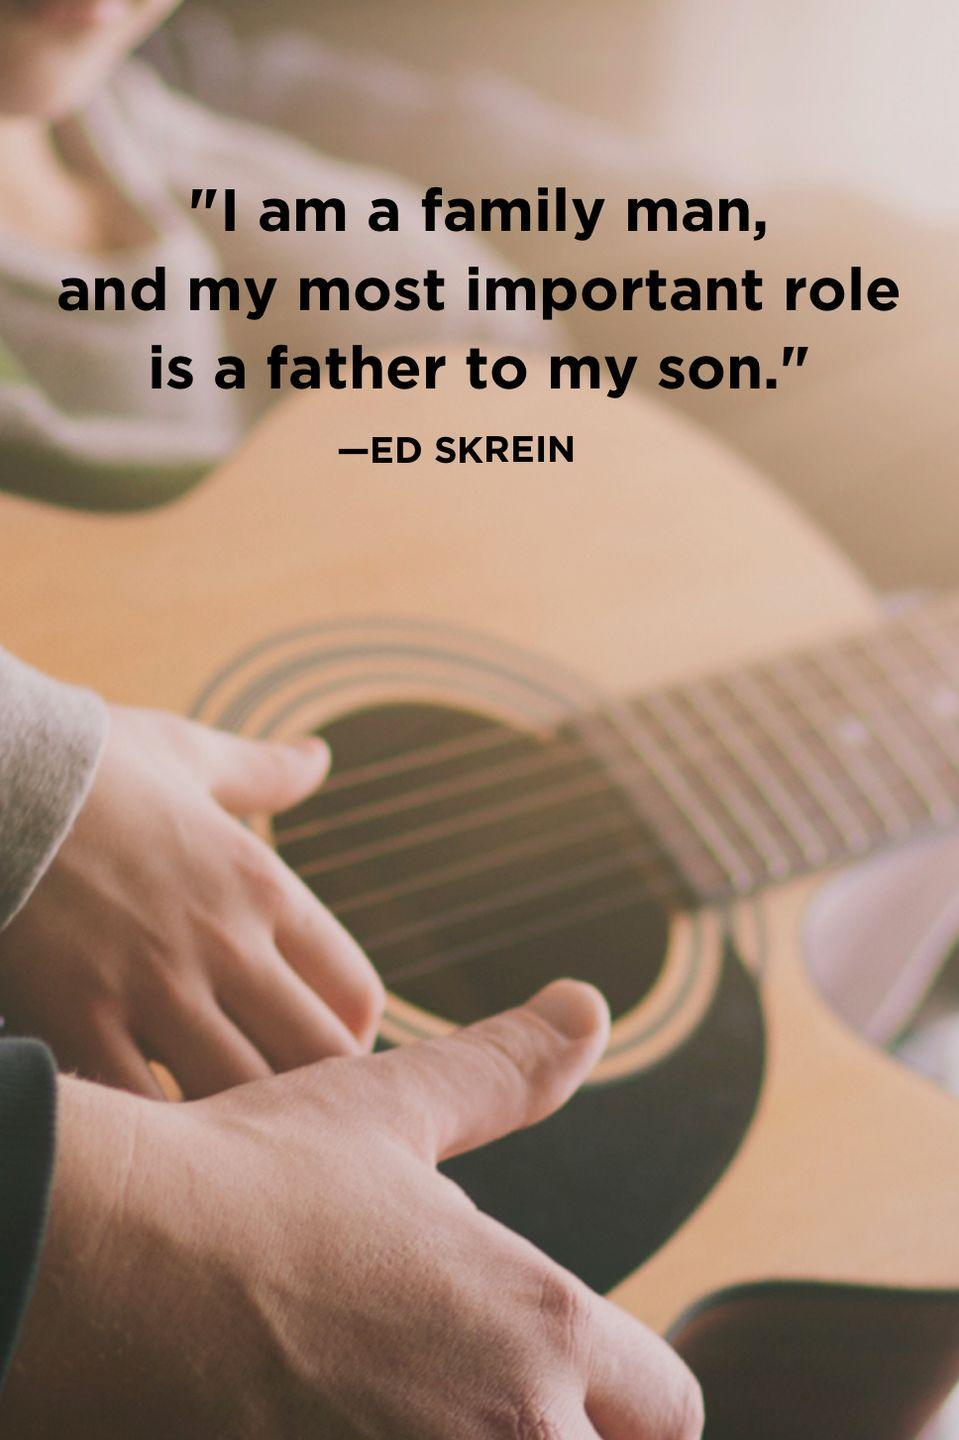 """<p>""""I am a family man, and my most important role is a father to my son.""""</p>"""